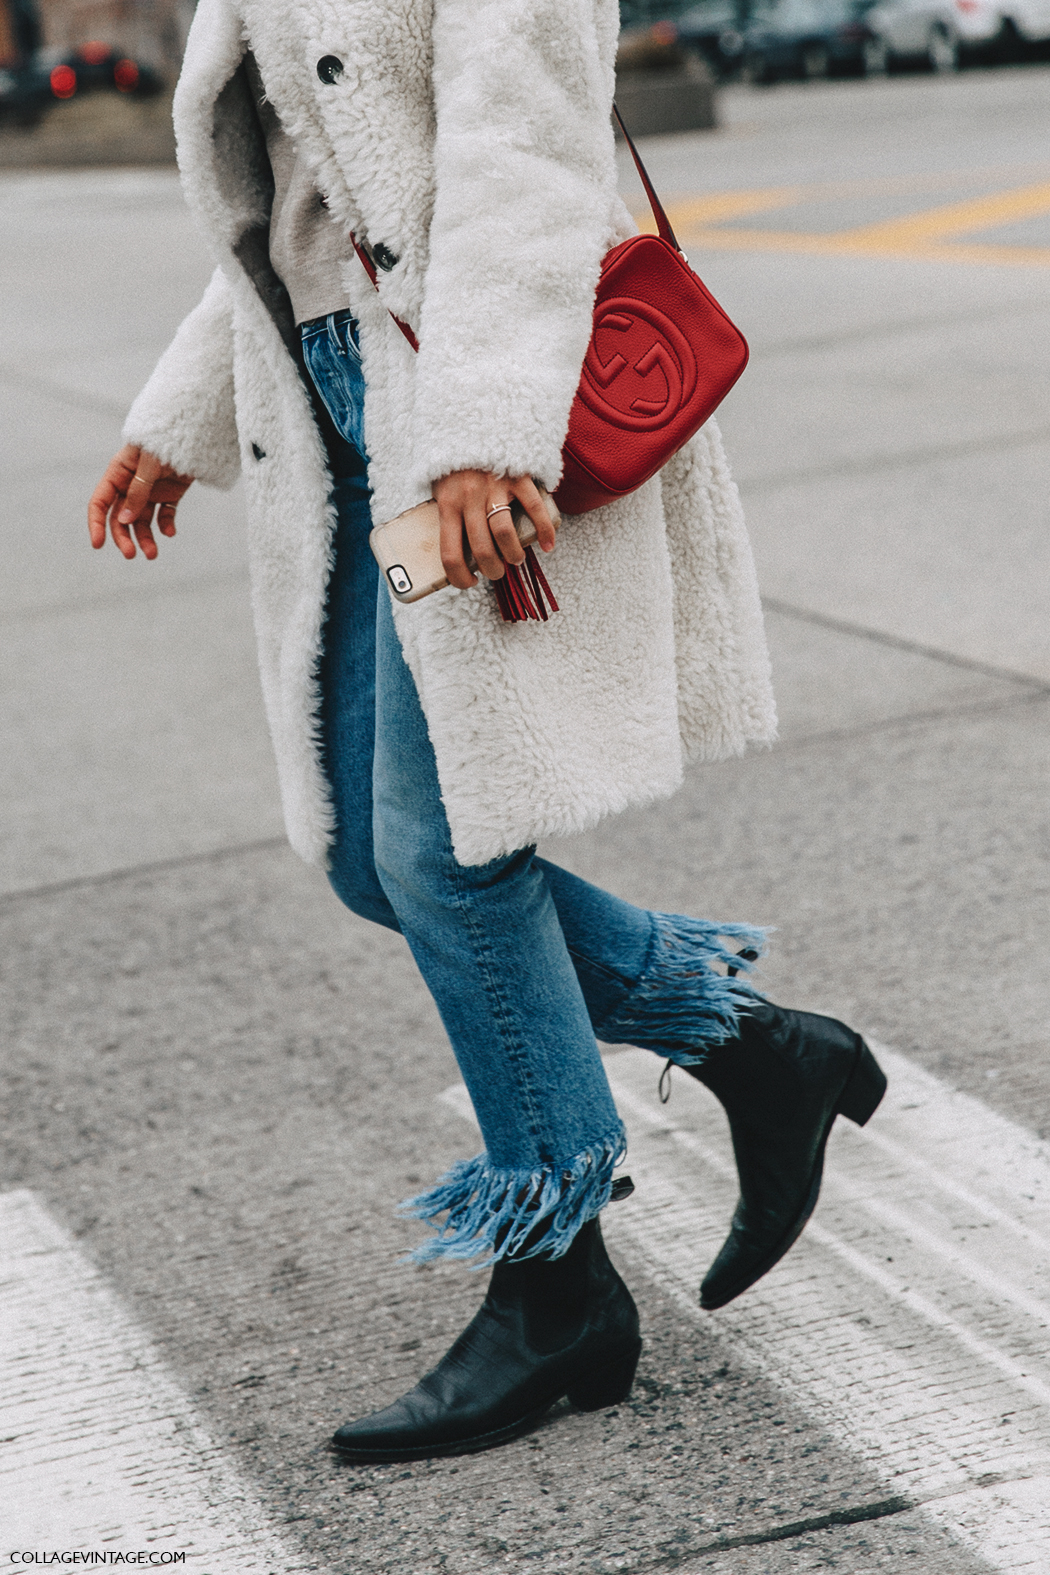 NYFW-New_York_Fashion_Week-Fall_Winter-16-Street_Style-Fur_Coat-White-Fringed_Jeans-2